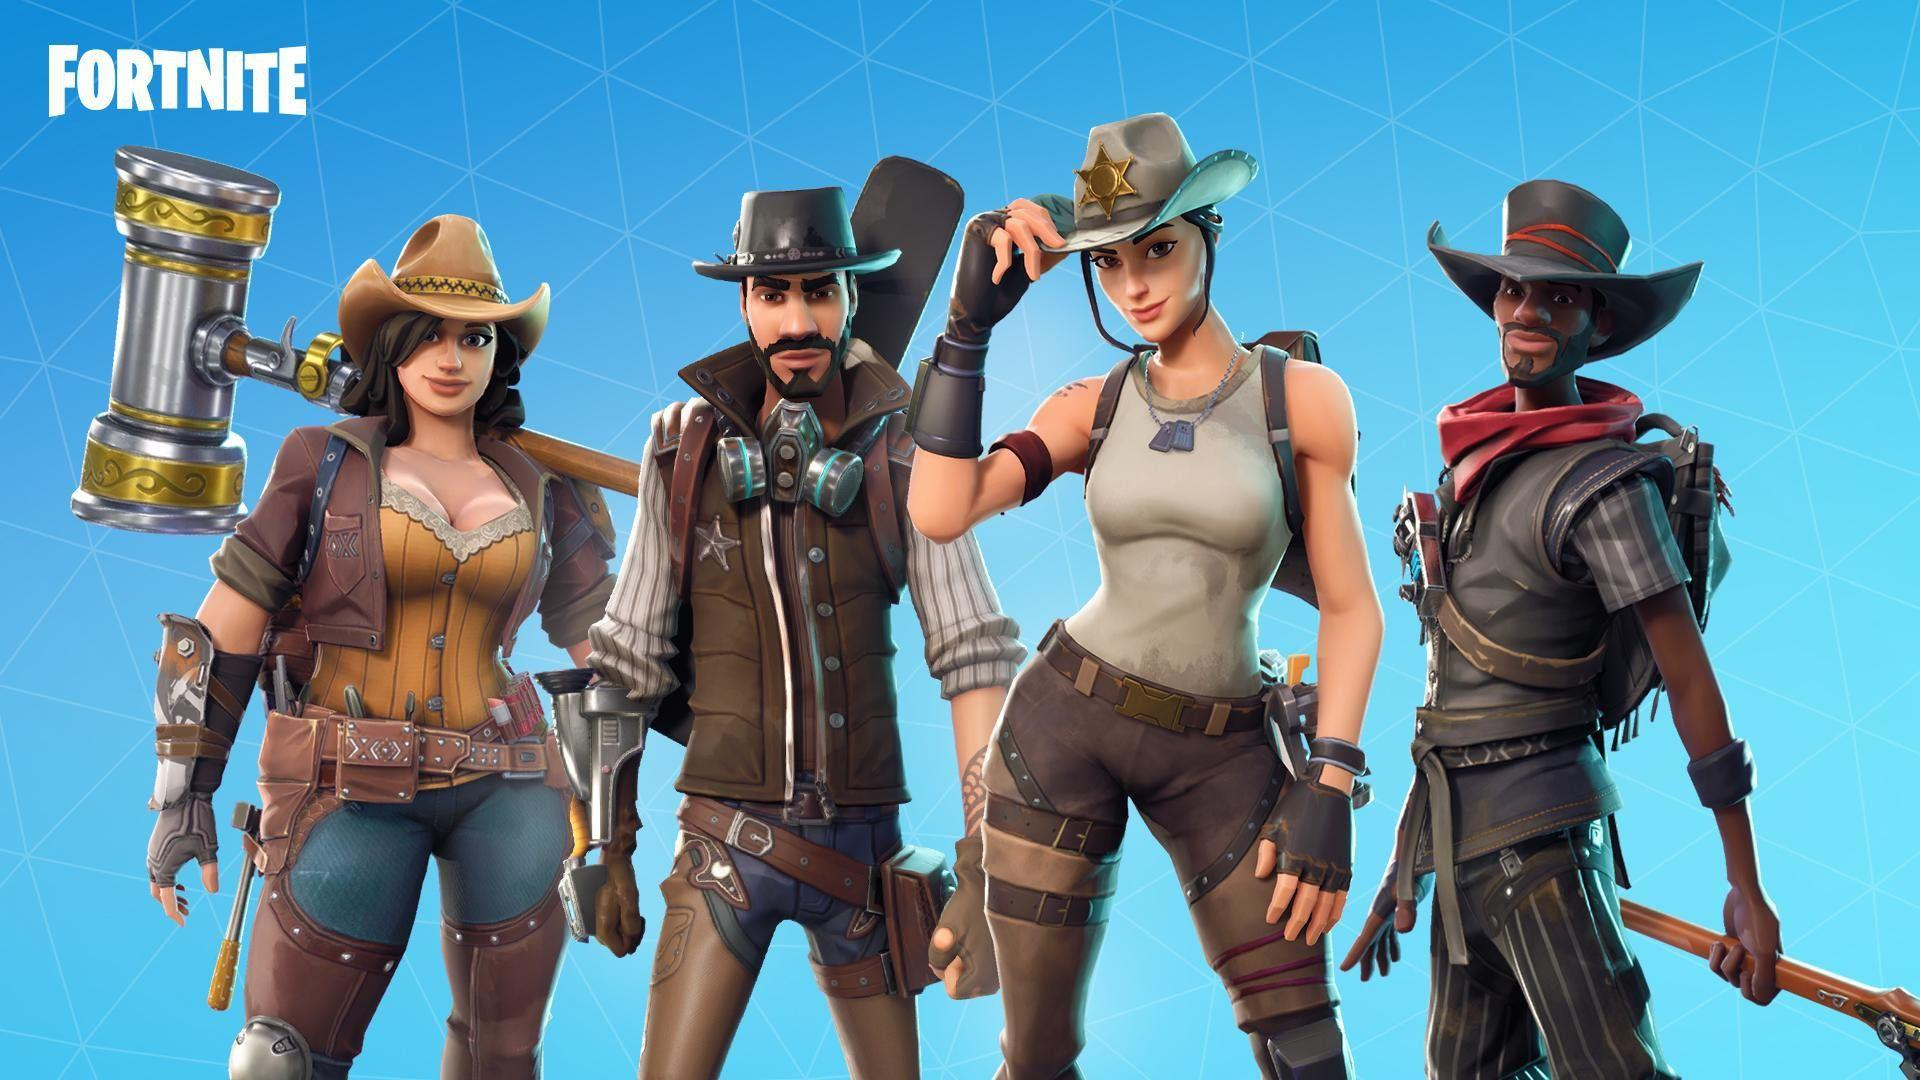 Wild West Heroes Road Trip Event Fortnite Season 5 Wallpaper For .